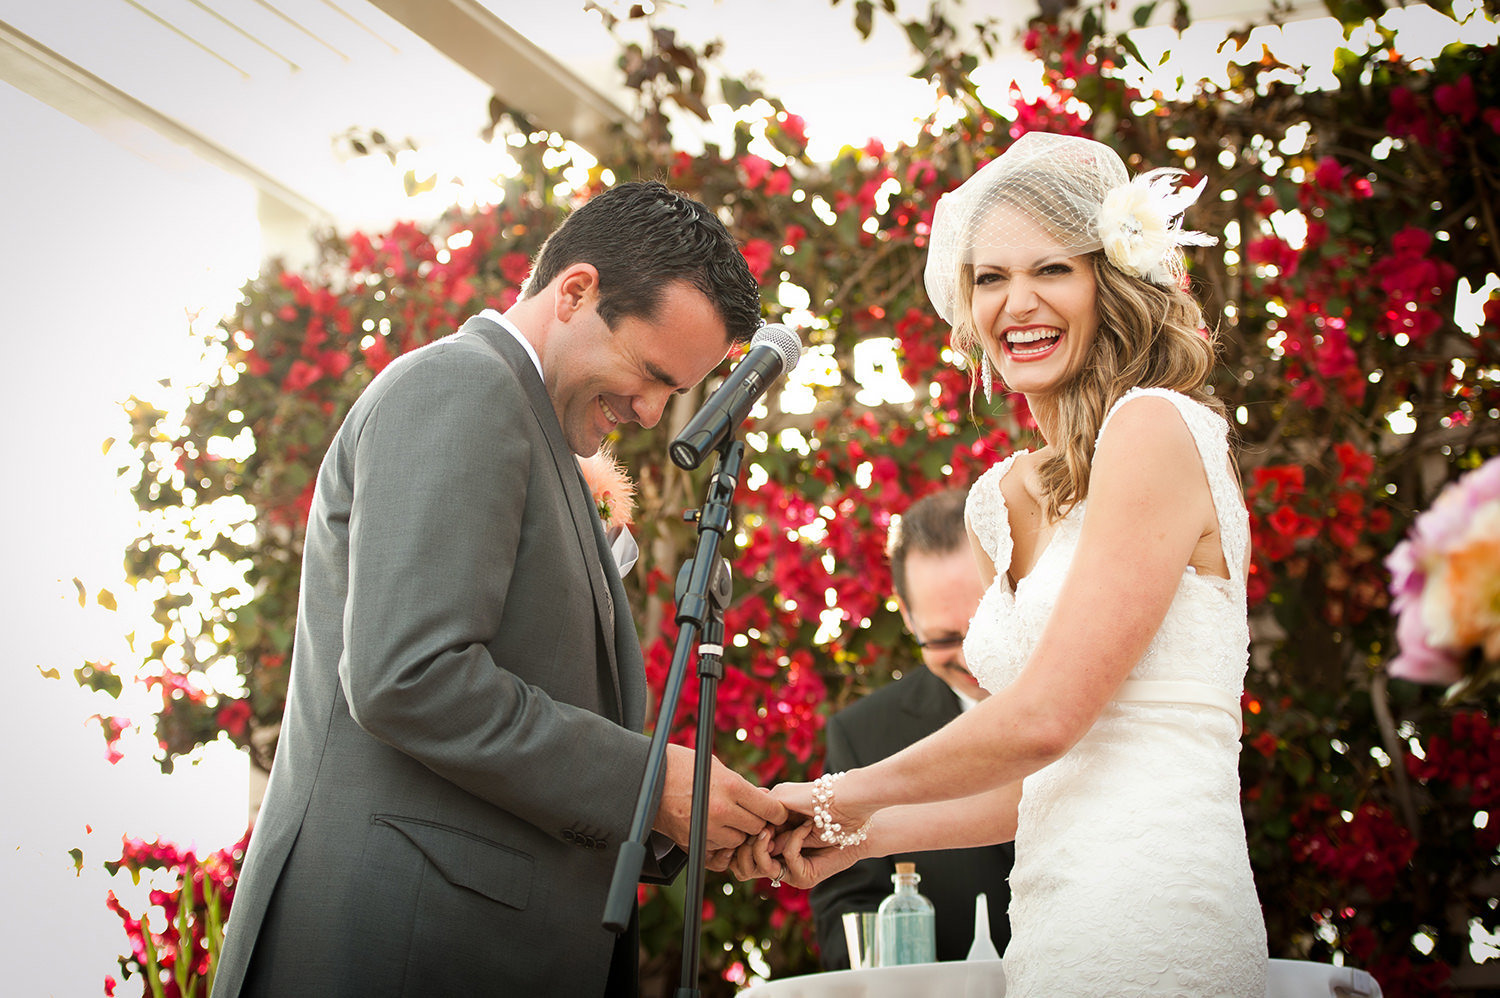 Bride laughing at ceremony with groom